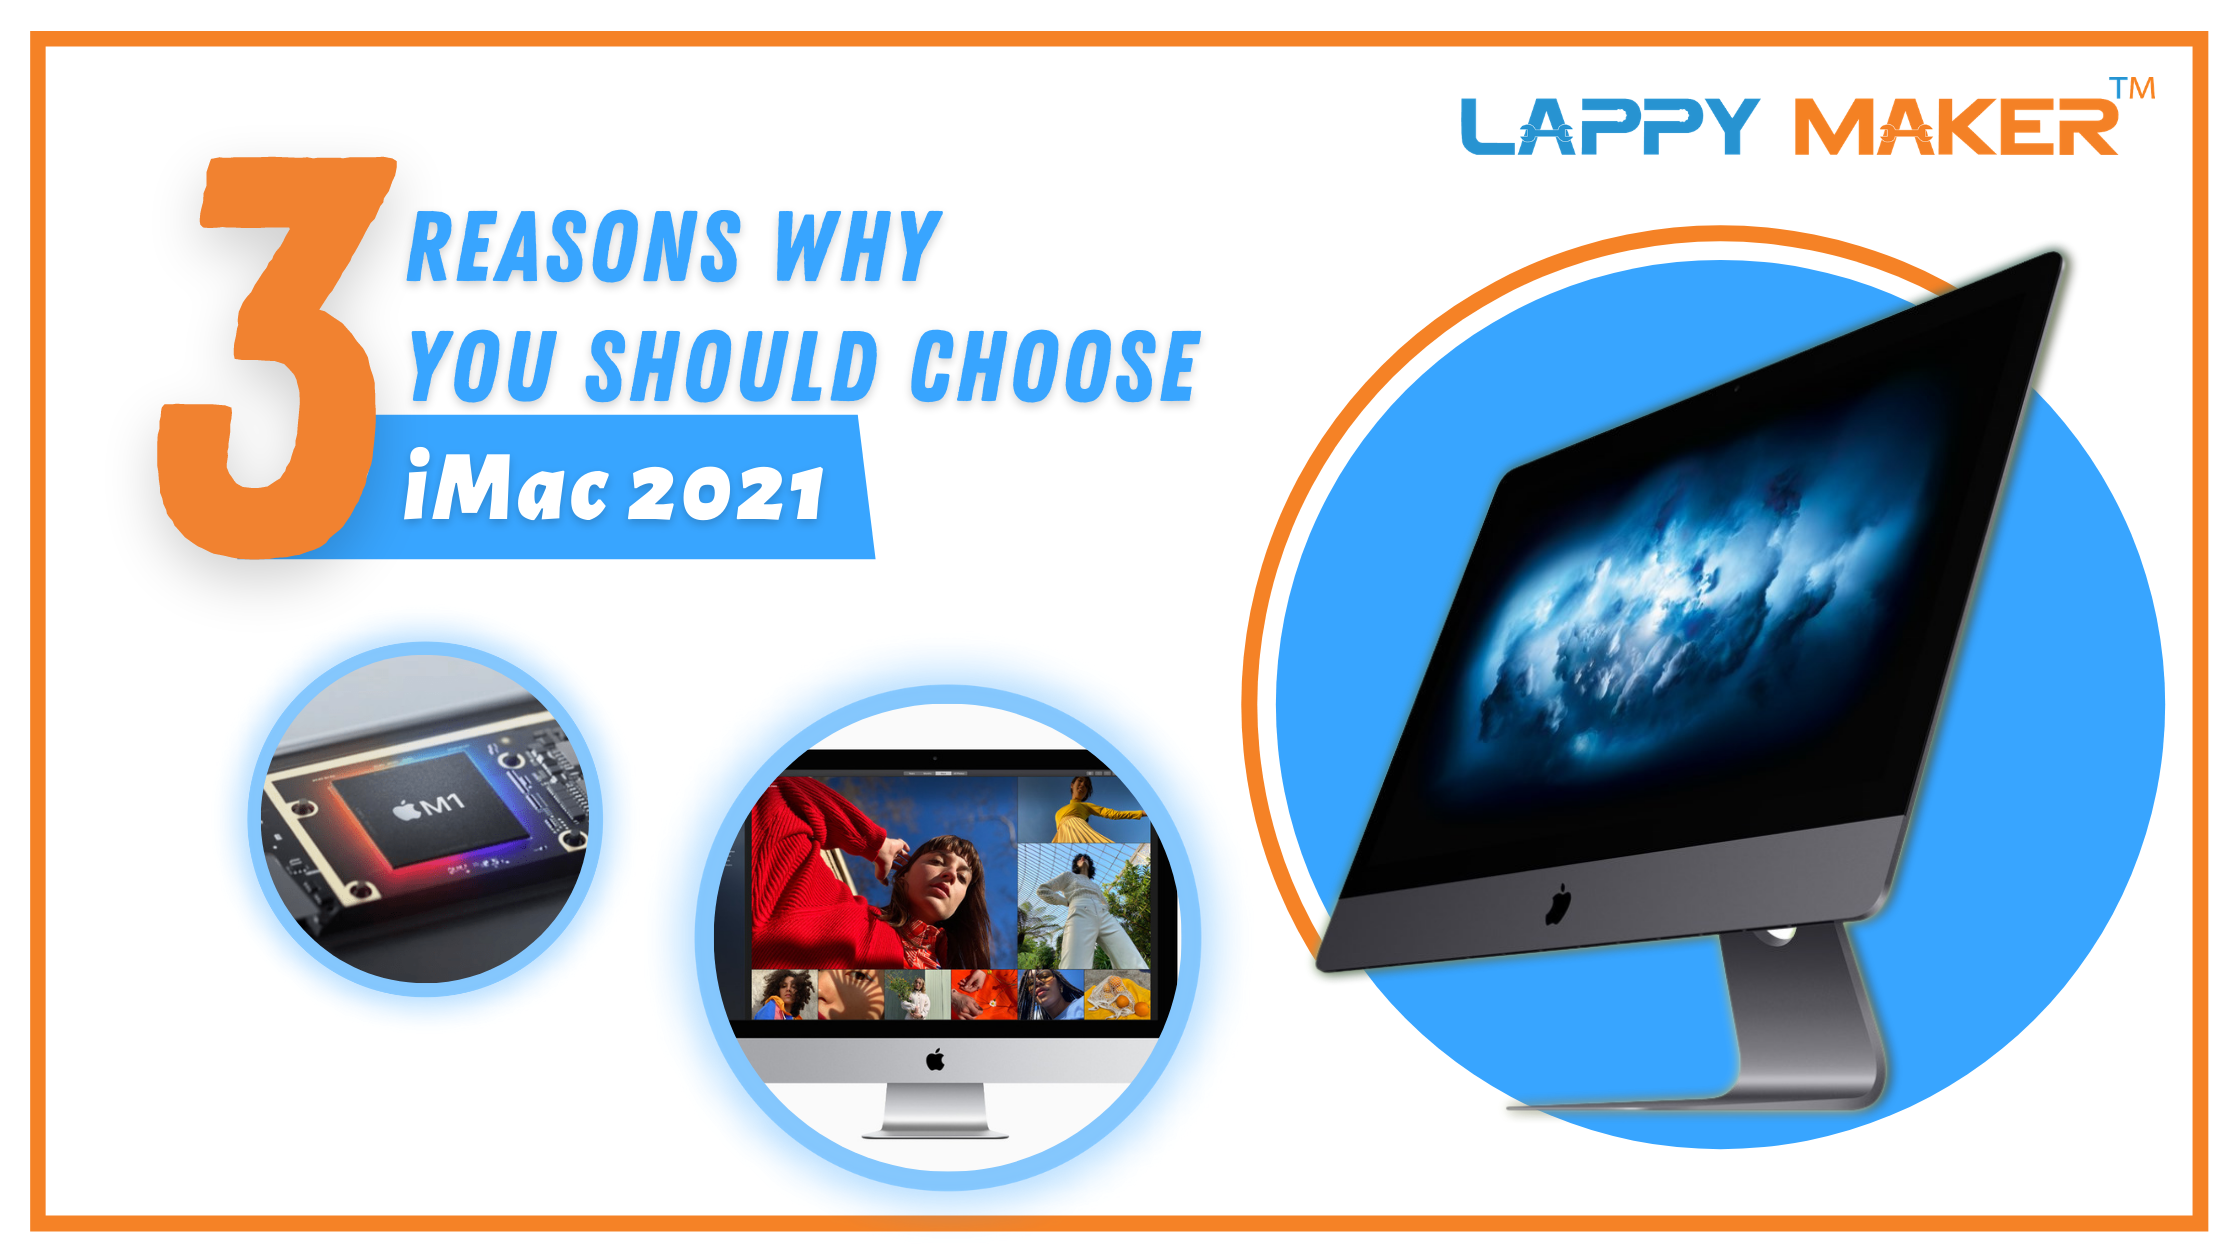 3 Reasons Why You Should Choose iMac 2021 – Lappy Maker